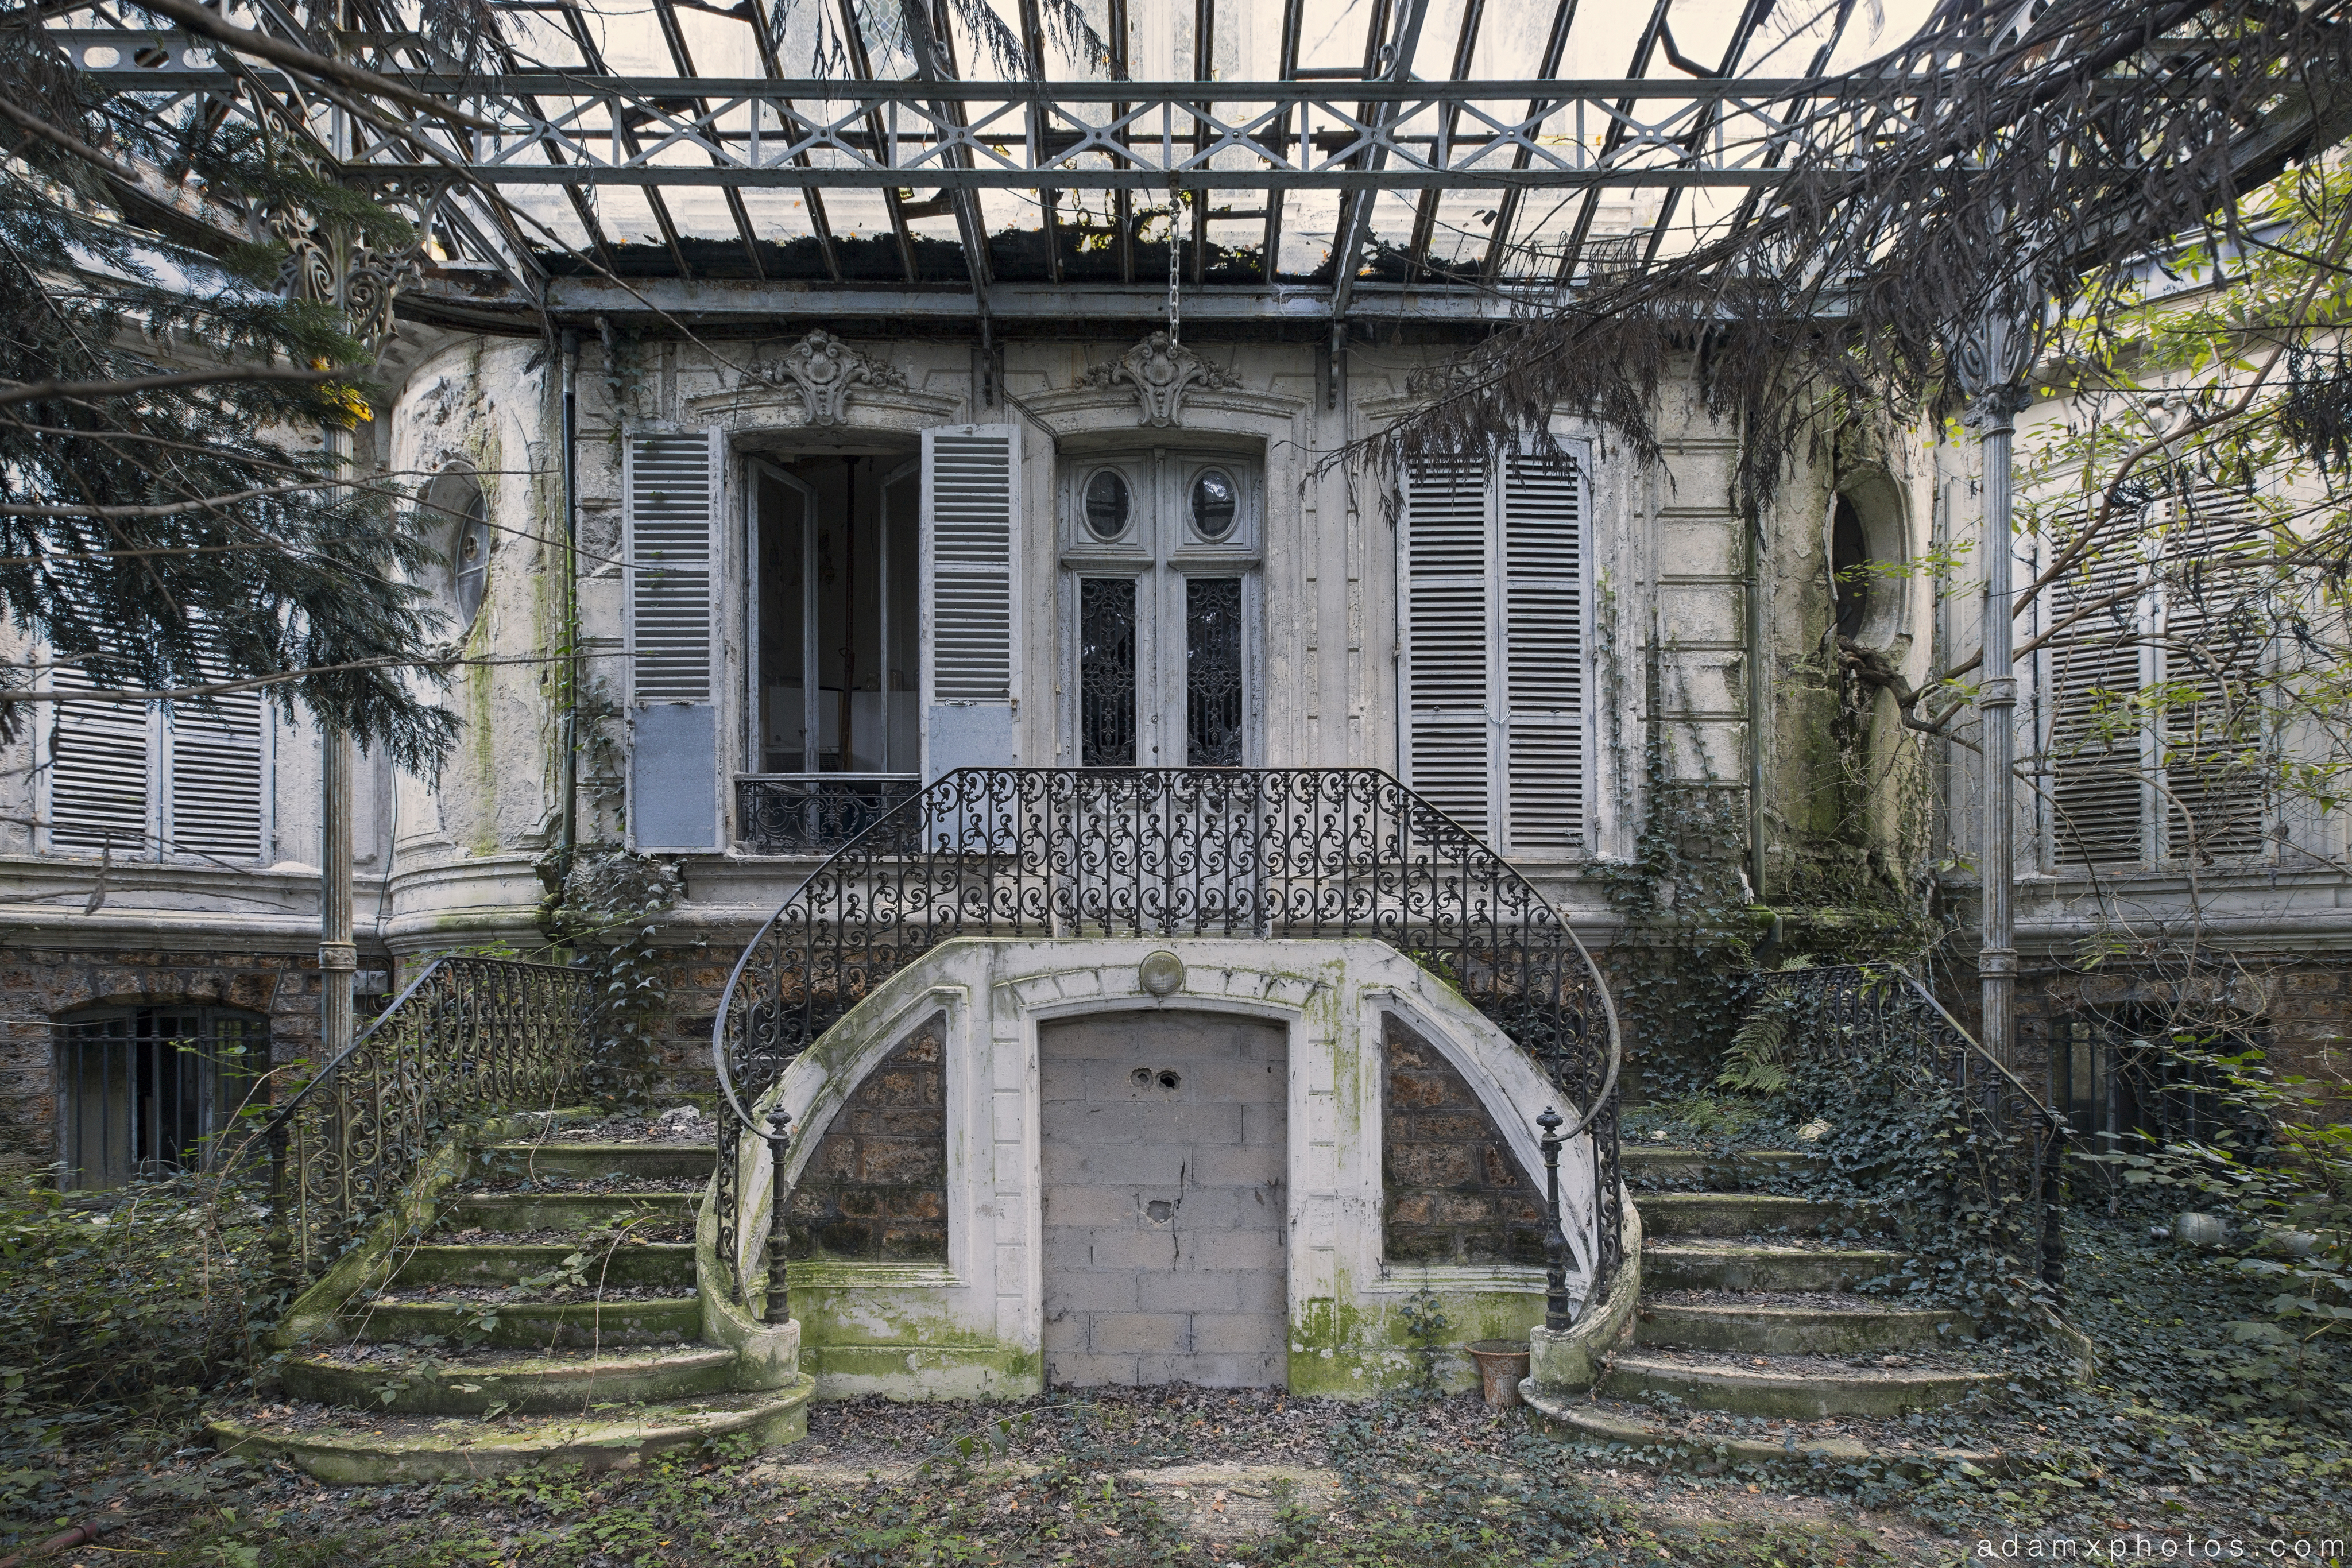 twin stairs canopy veranda outside exterior Chateau Verdure France Urbex Adam X Urban Exploration 2015 Abandoned decay lost forgotten derelict